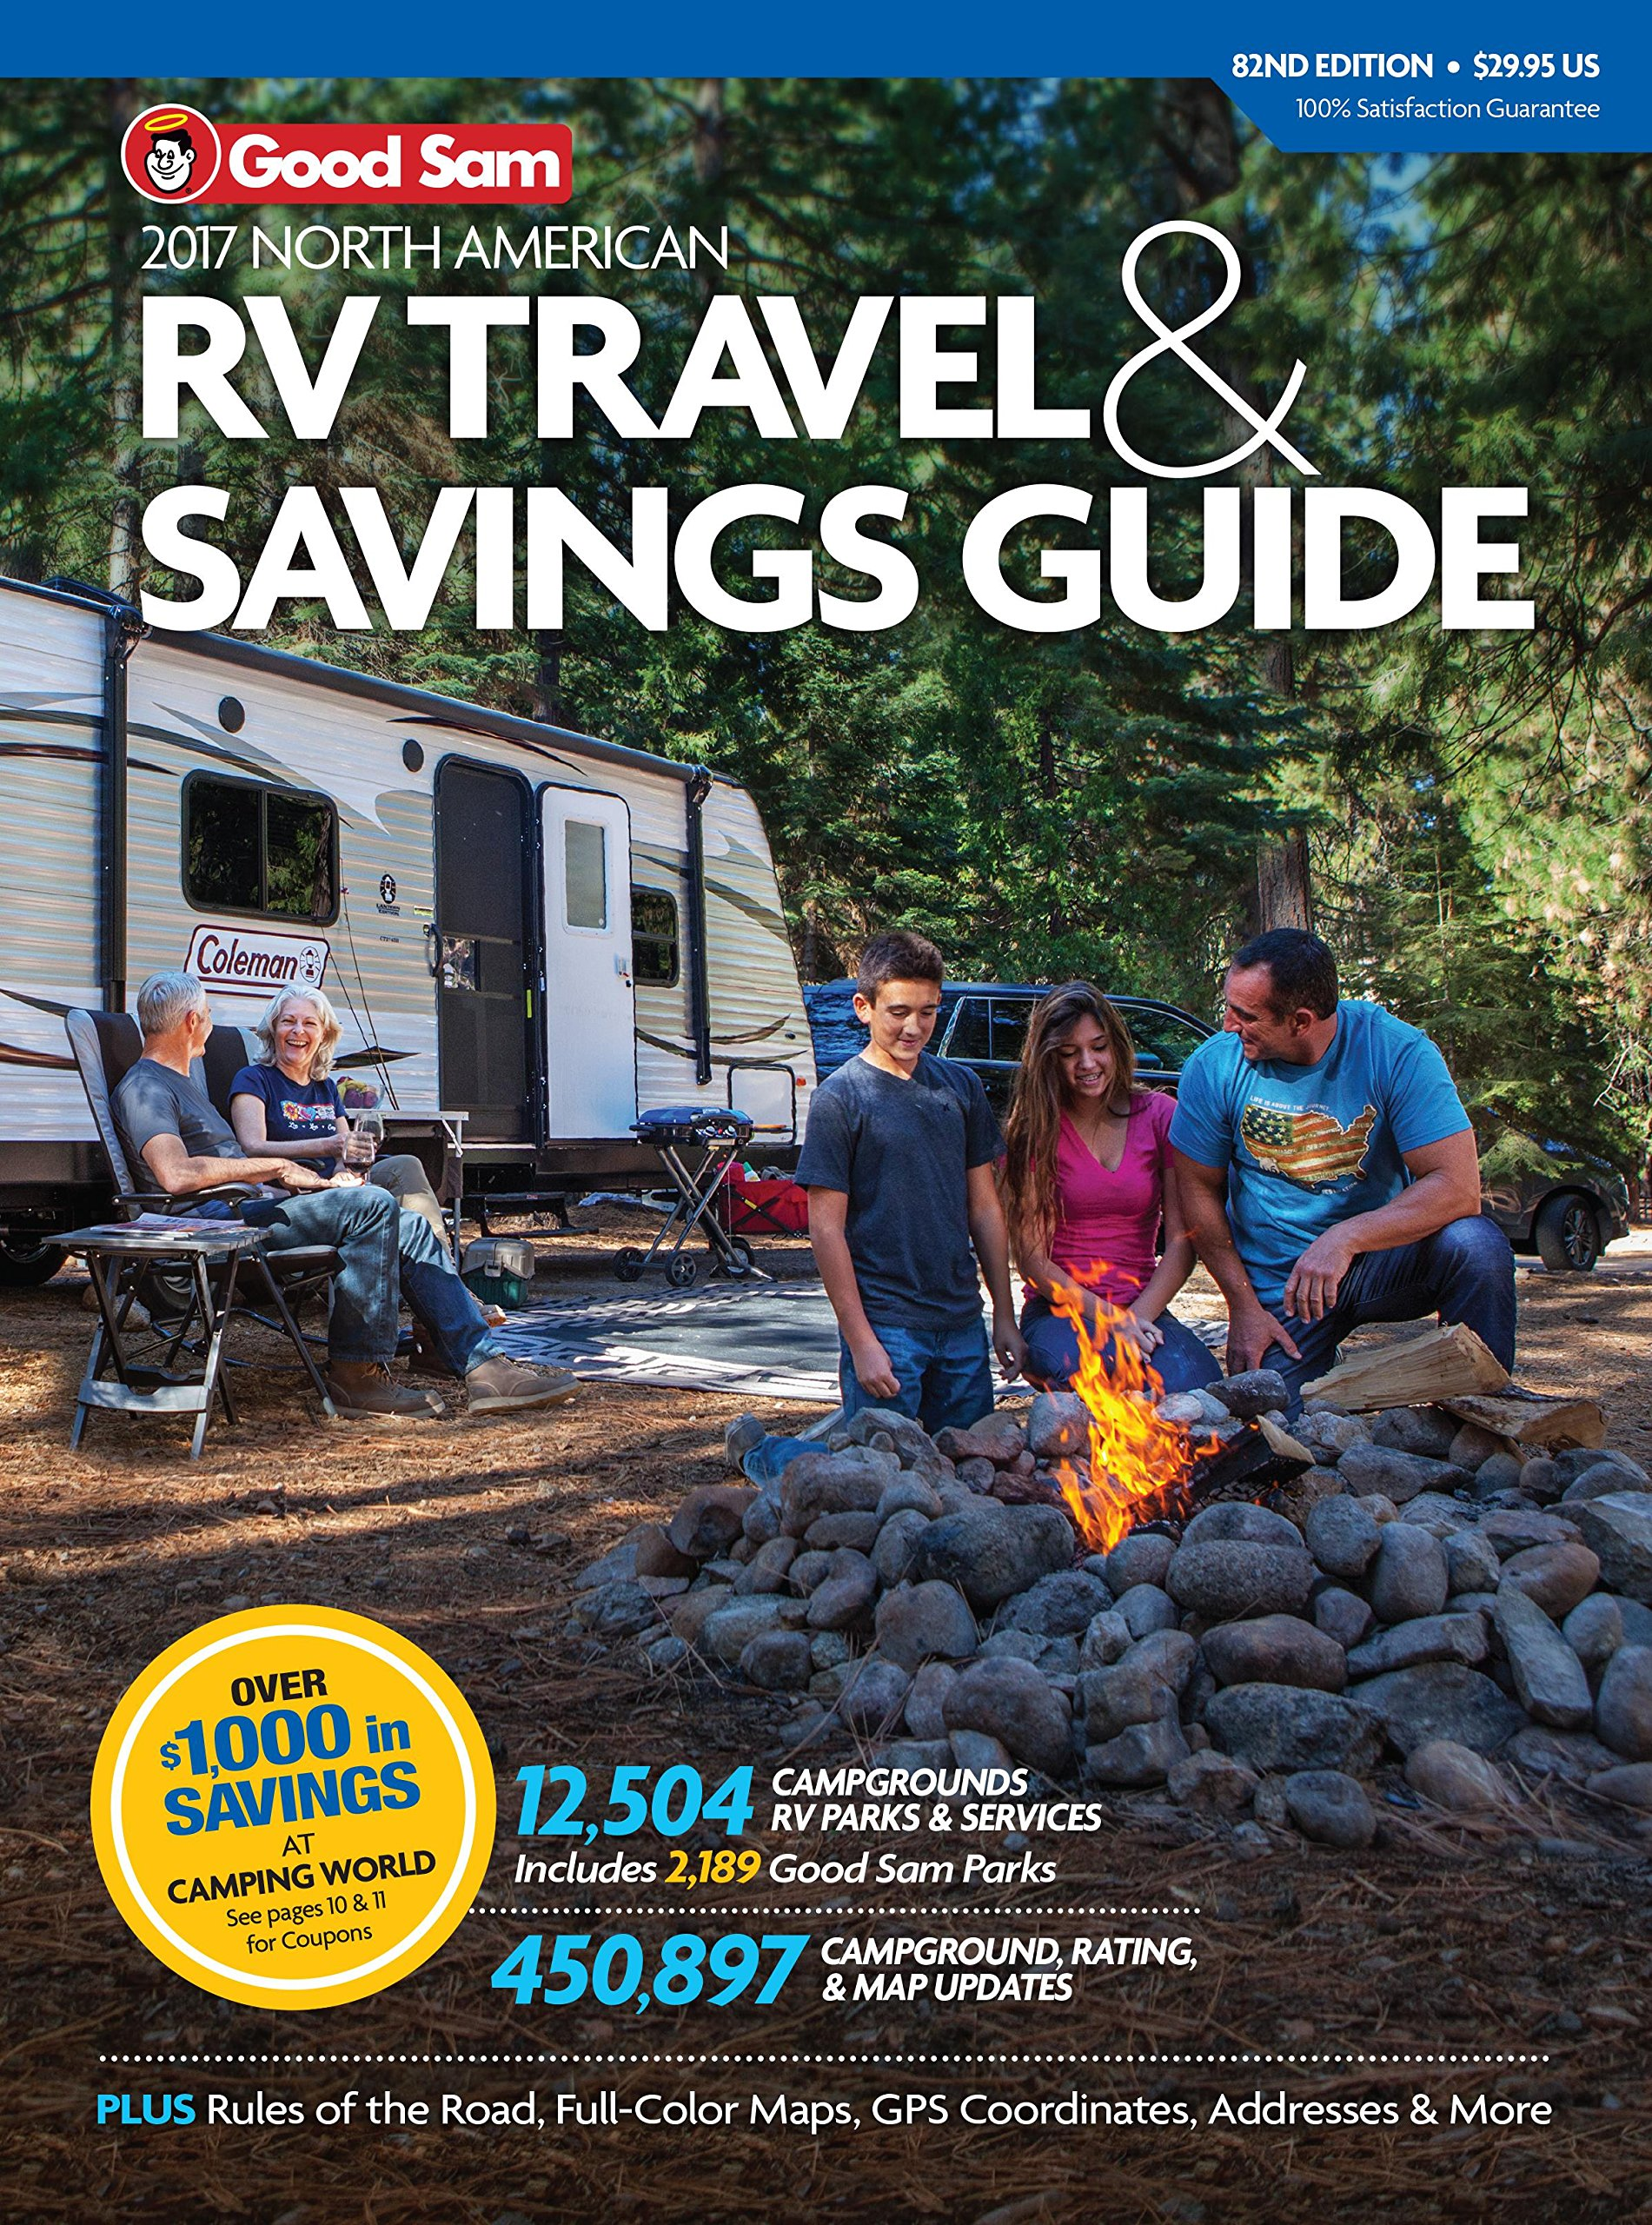 Travel Savings Guide Campground Directory product image